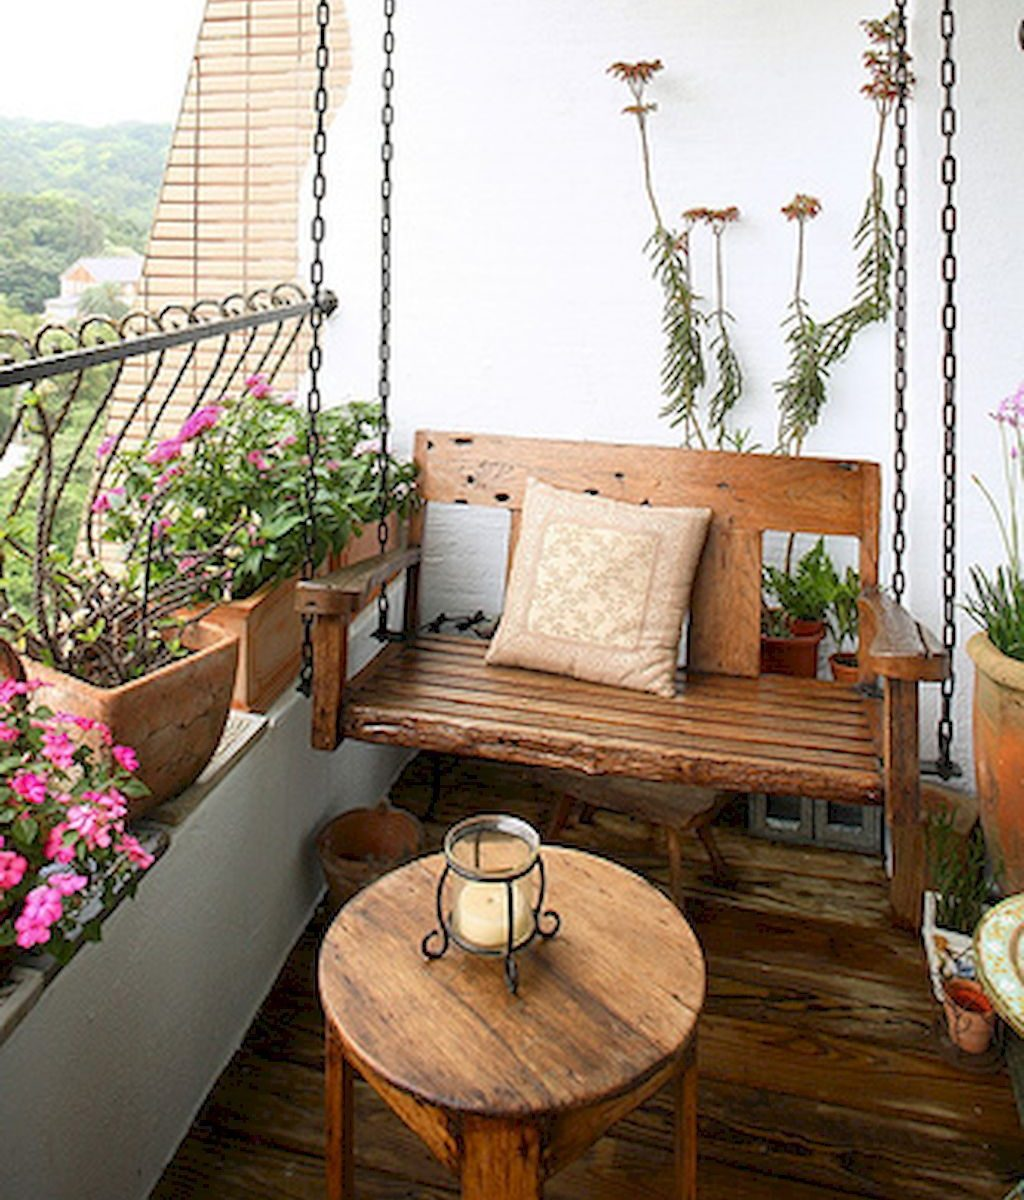 Small Apartment Balcony Furniture And Decor Ideas 6 Balcony for Balcony Furniture